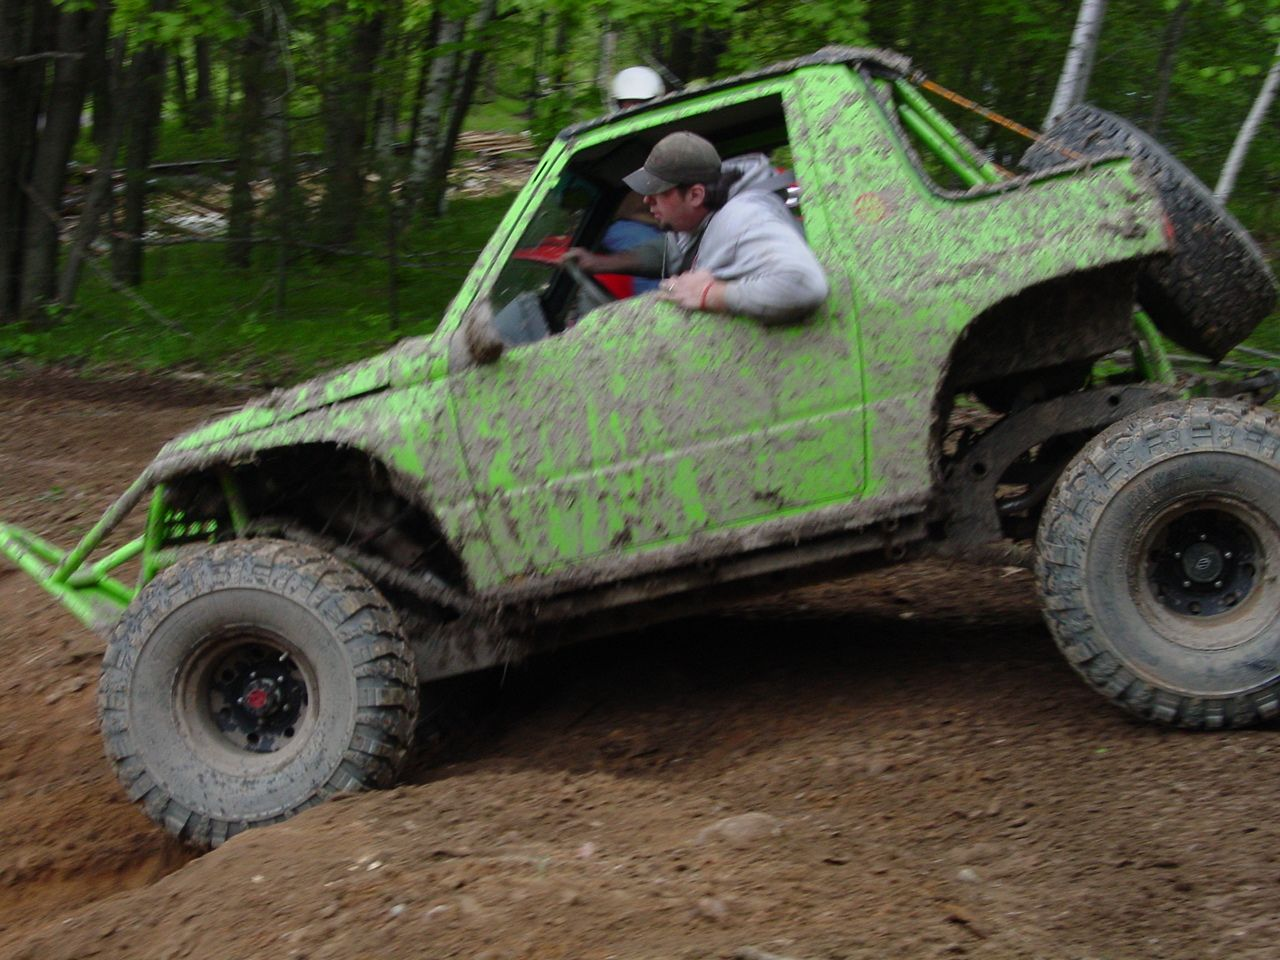 Zukiworld Travels To Wisconsin To Wheel With Rpm4x4 And Friends